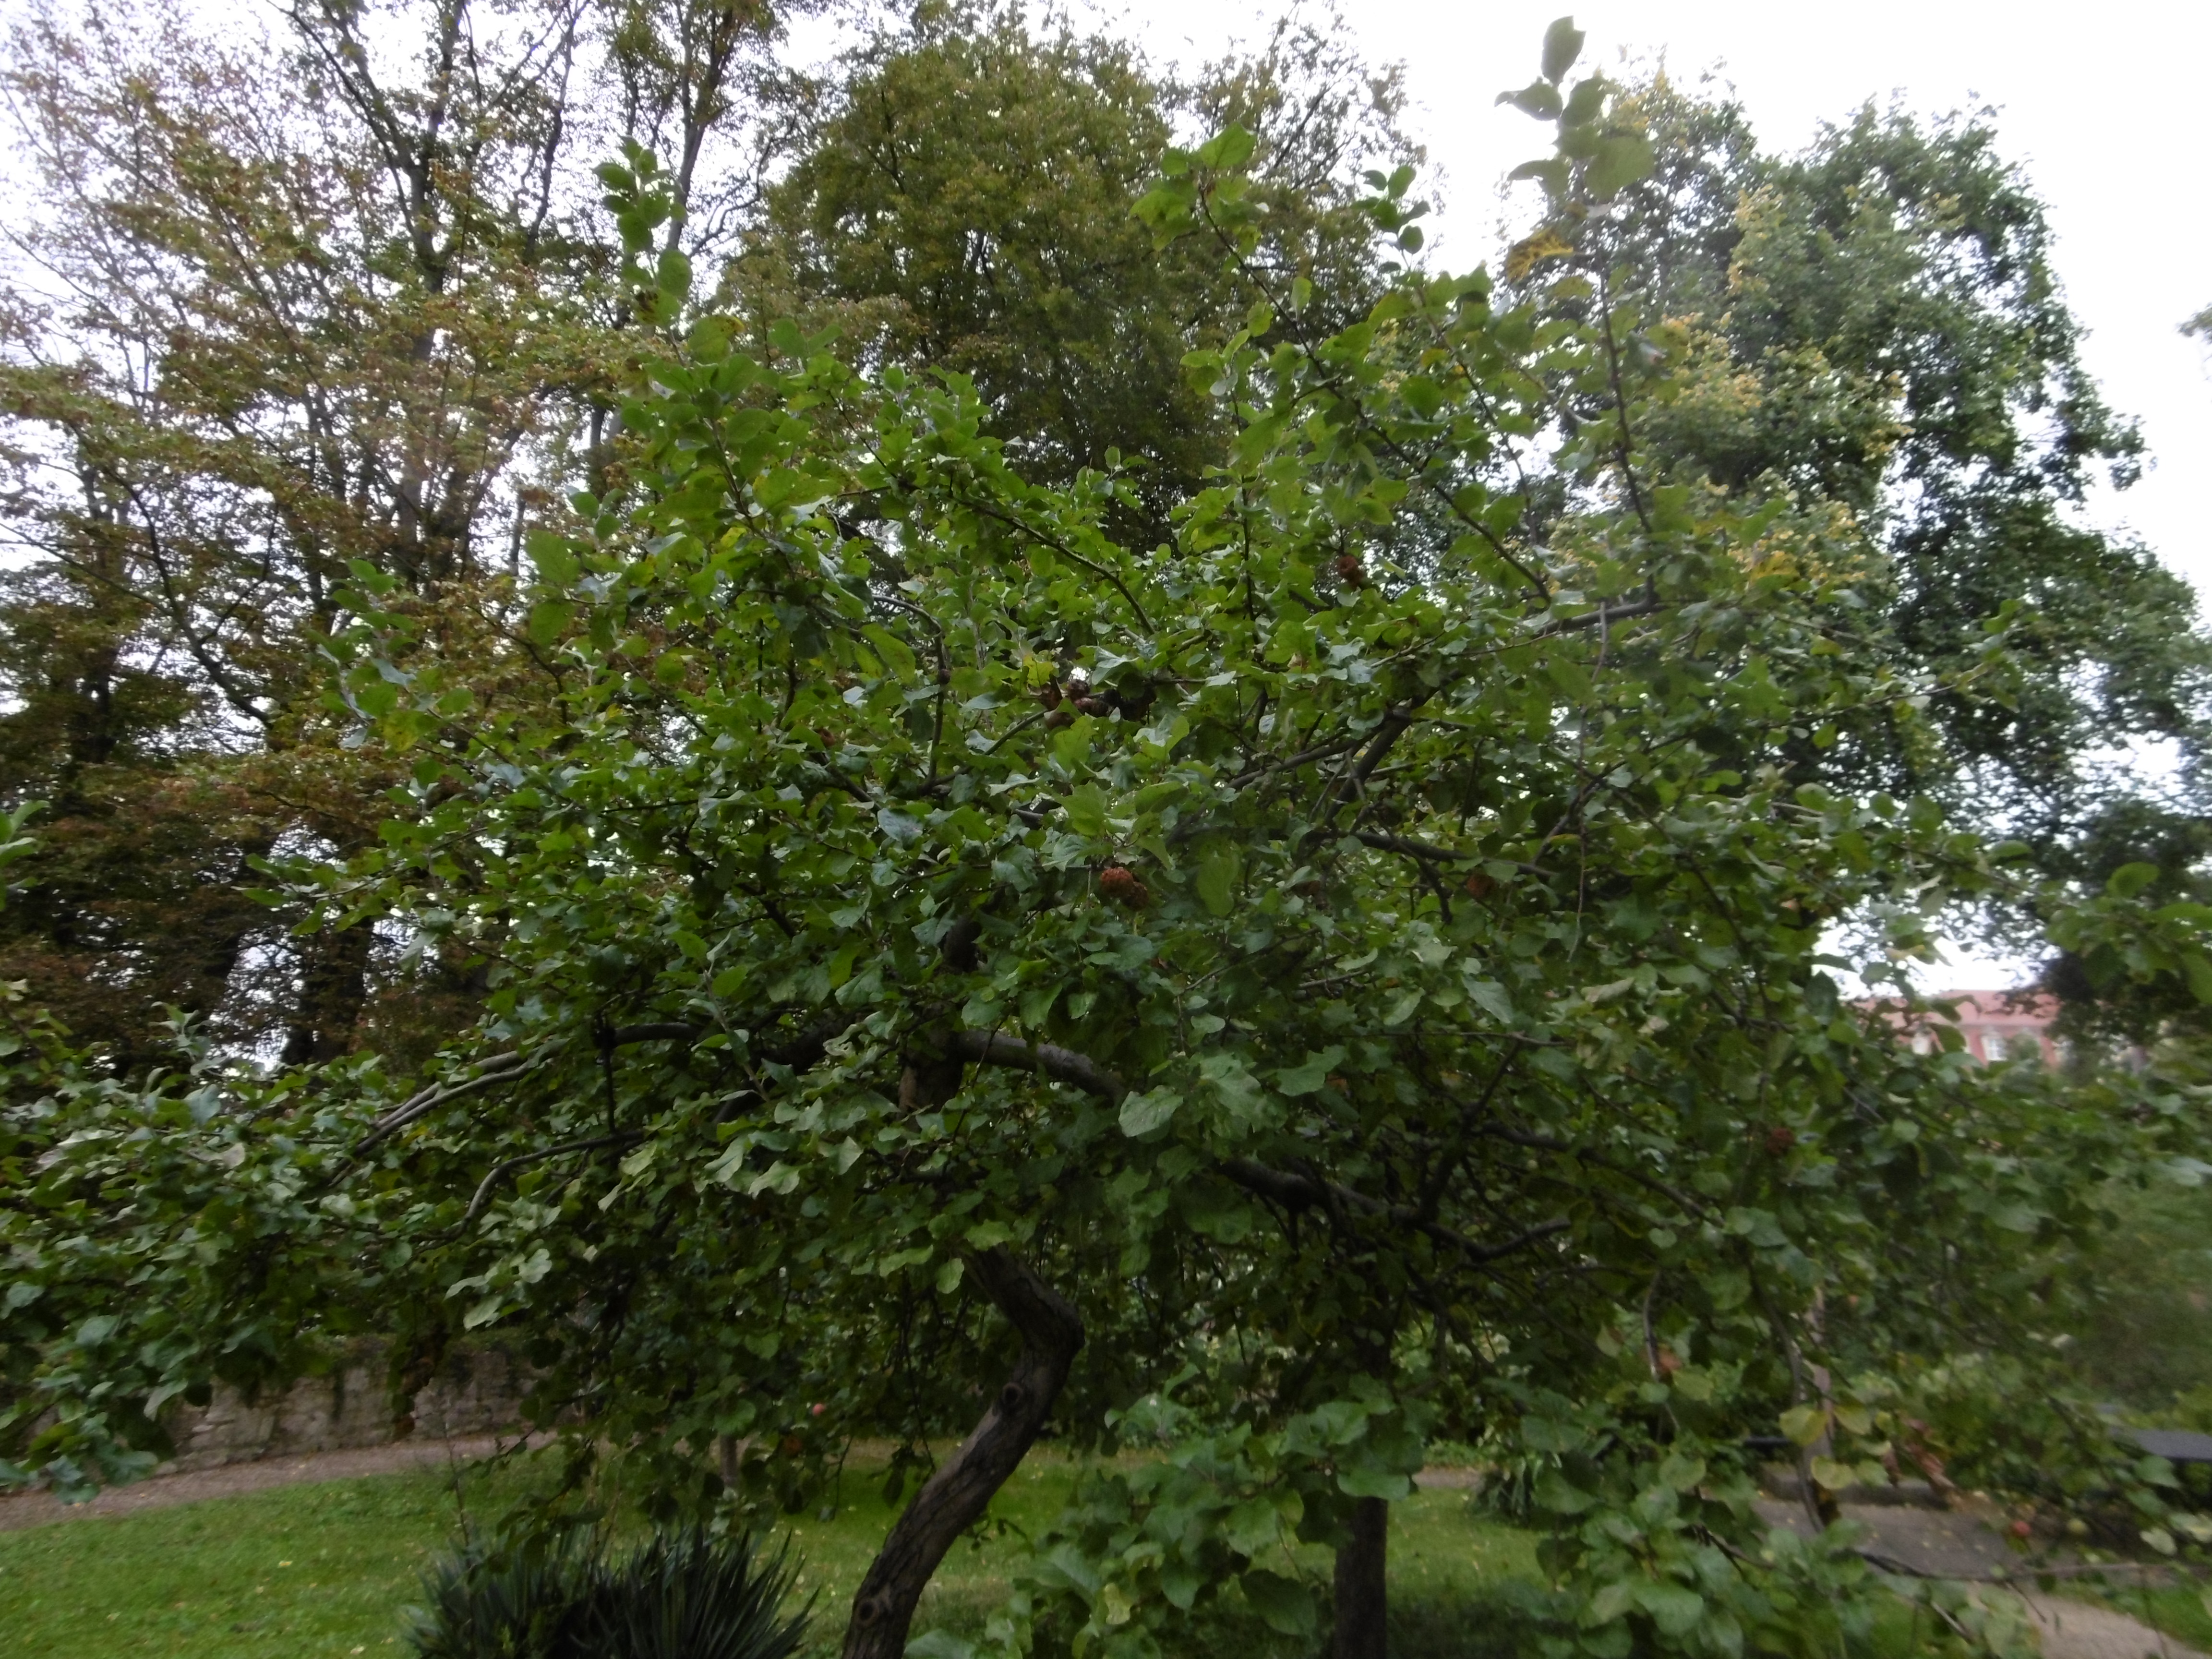 A low tree similar to an apple